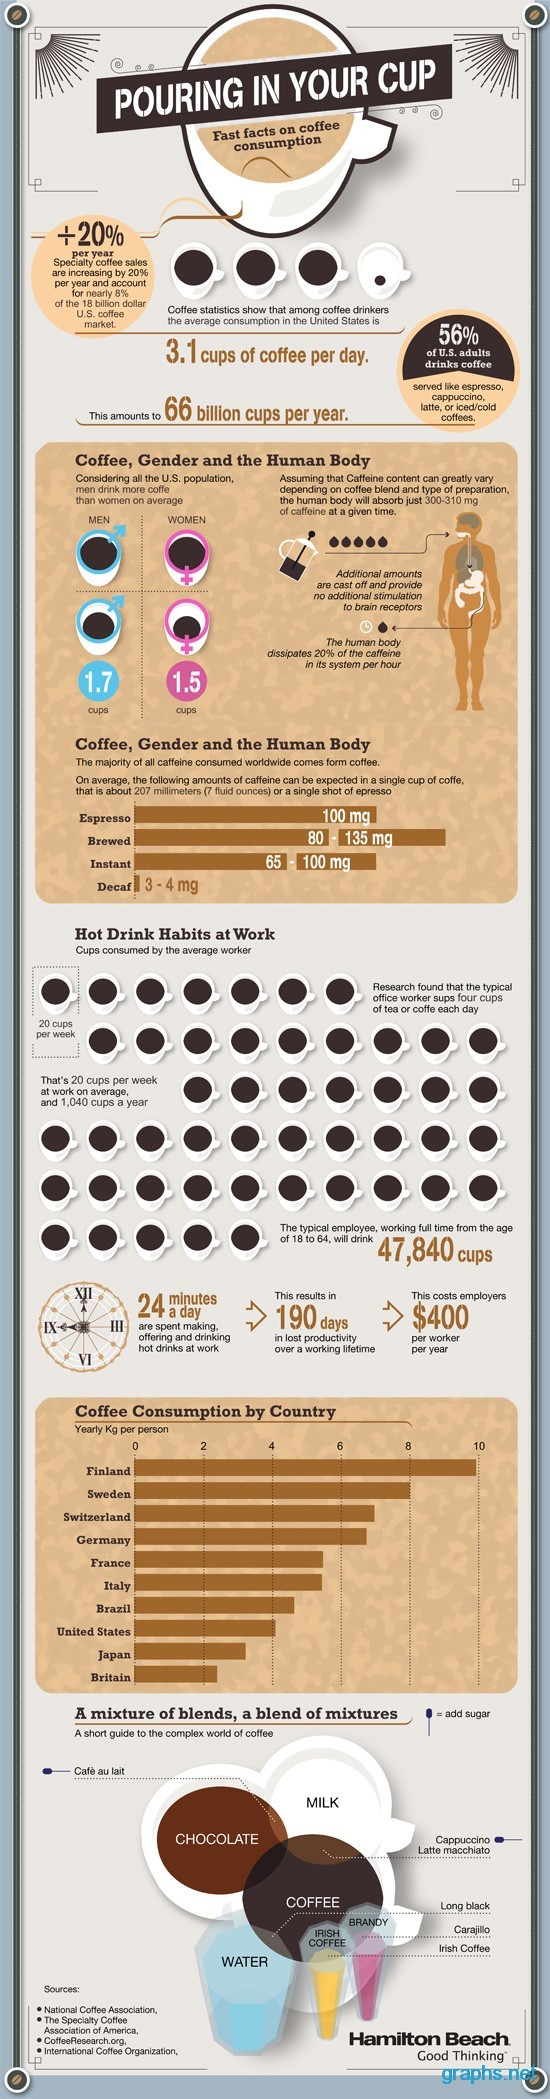 Facts About Coffee Consumption